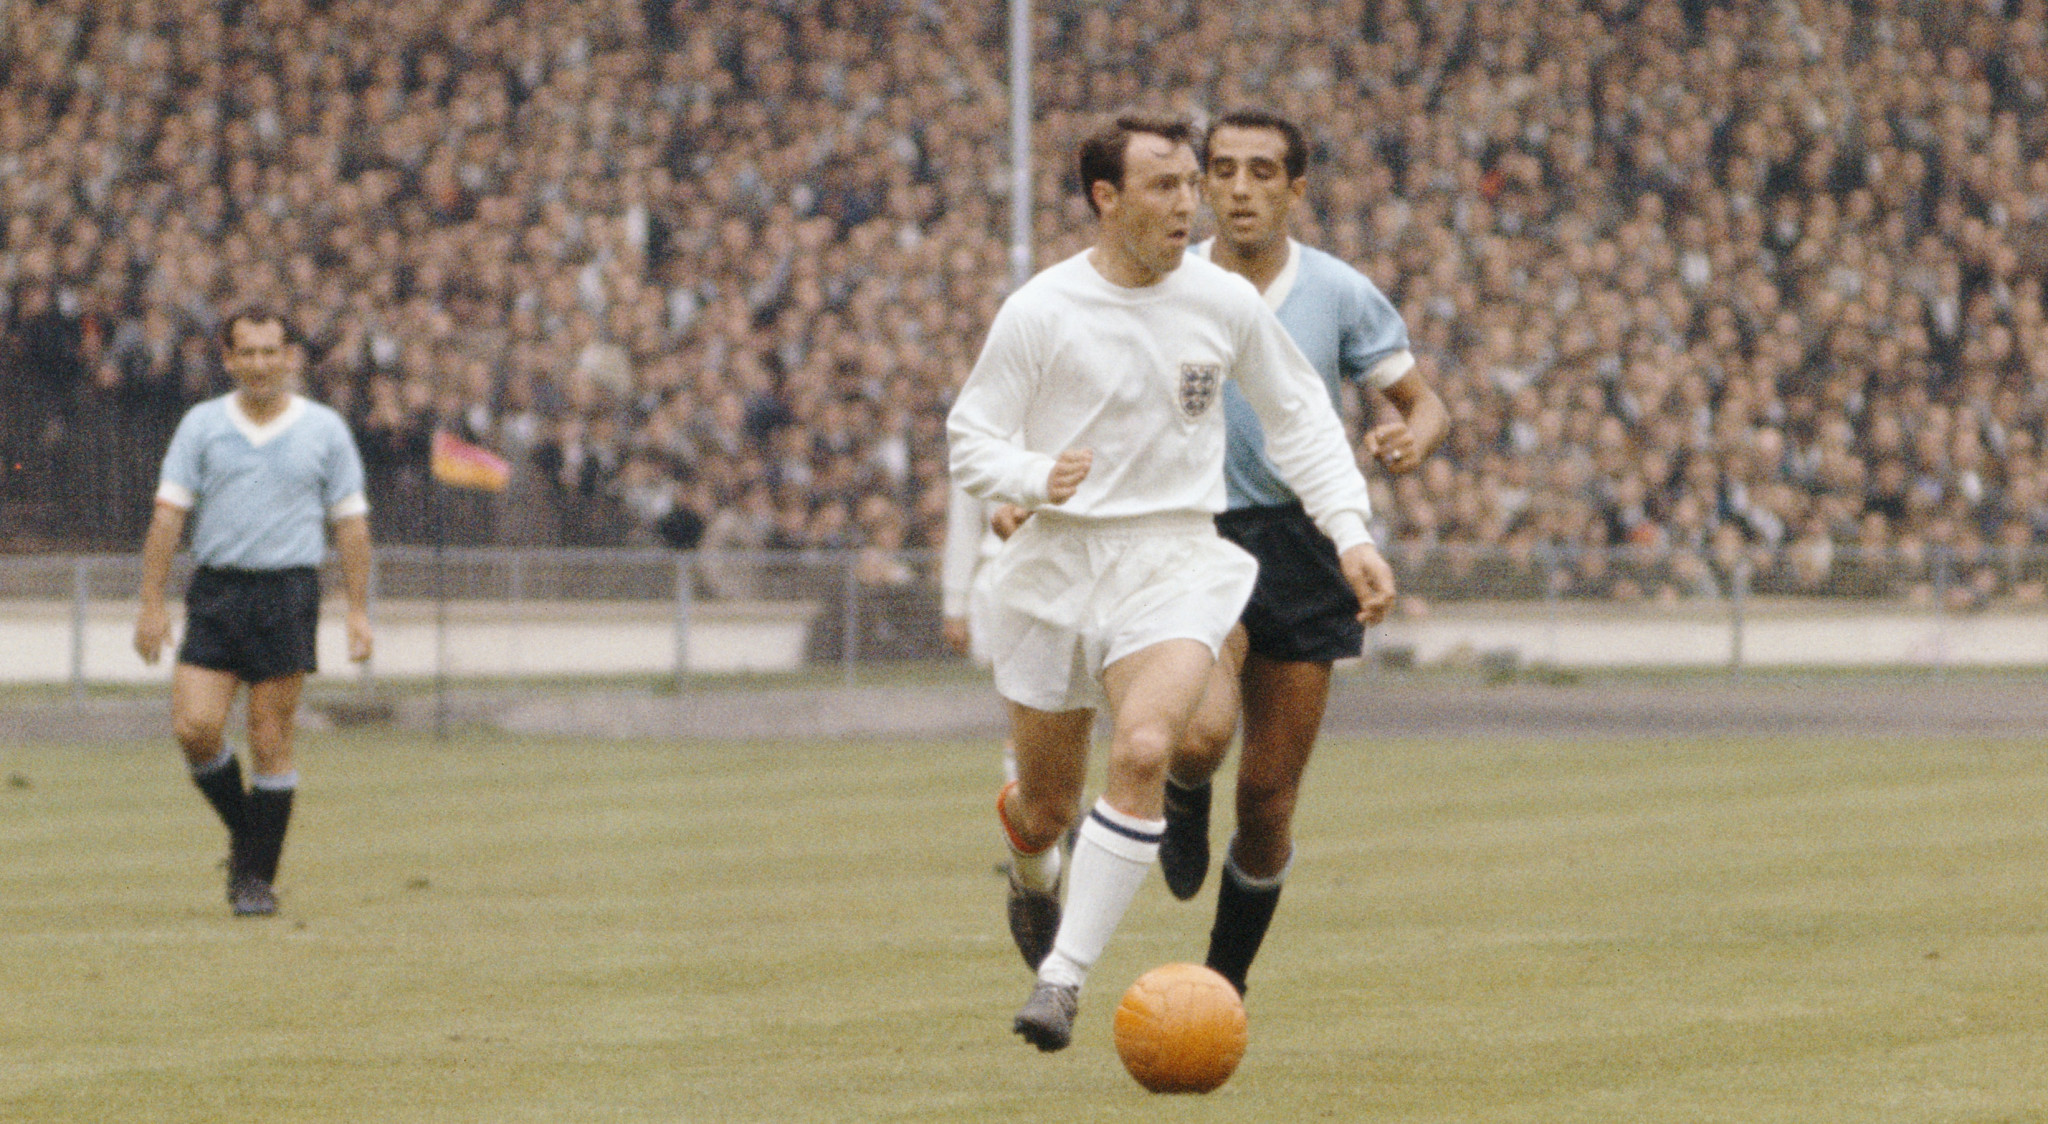 Jimmy Greaves won the FIFA World Cup in 1966 with England ©Getty Images